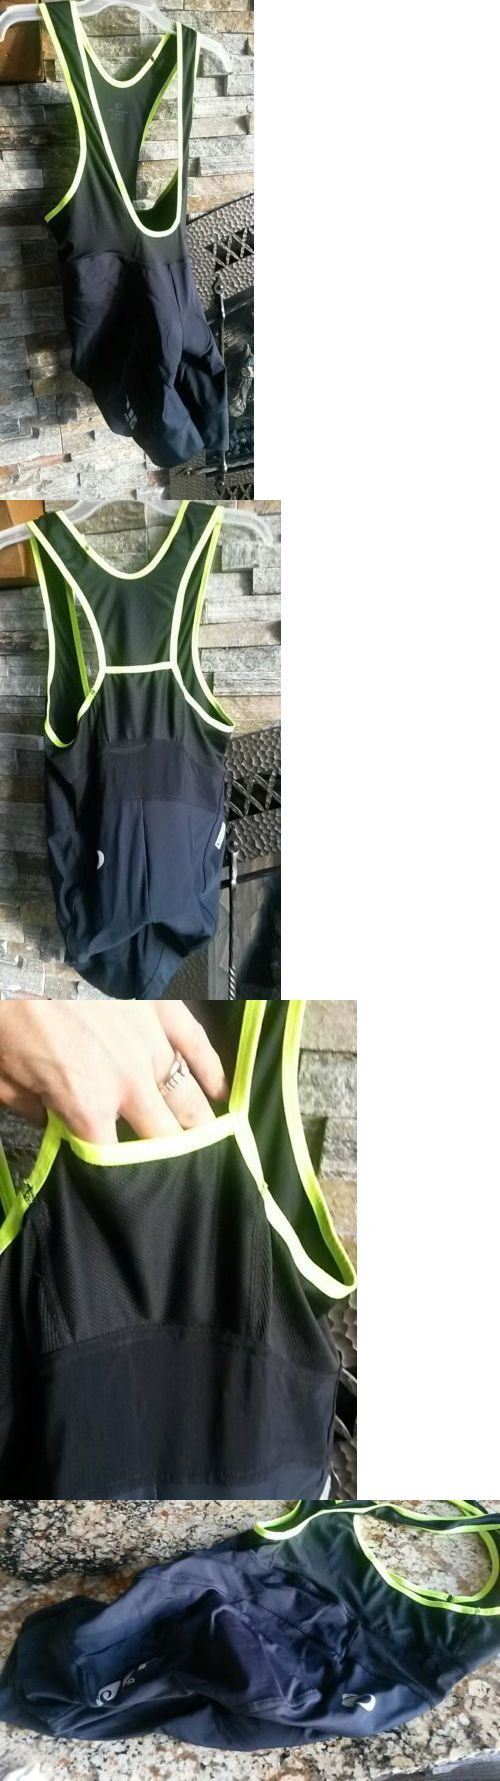 Shorts 177853: Pearl Izumi Pro In-R-Cool Cycling Bib Shorts Mens Large Road Mountain Bike -> BUY IT NOW ONLY: $75 on eBay!